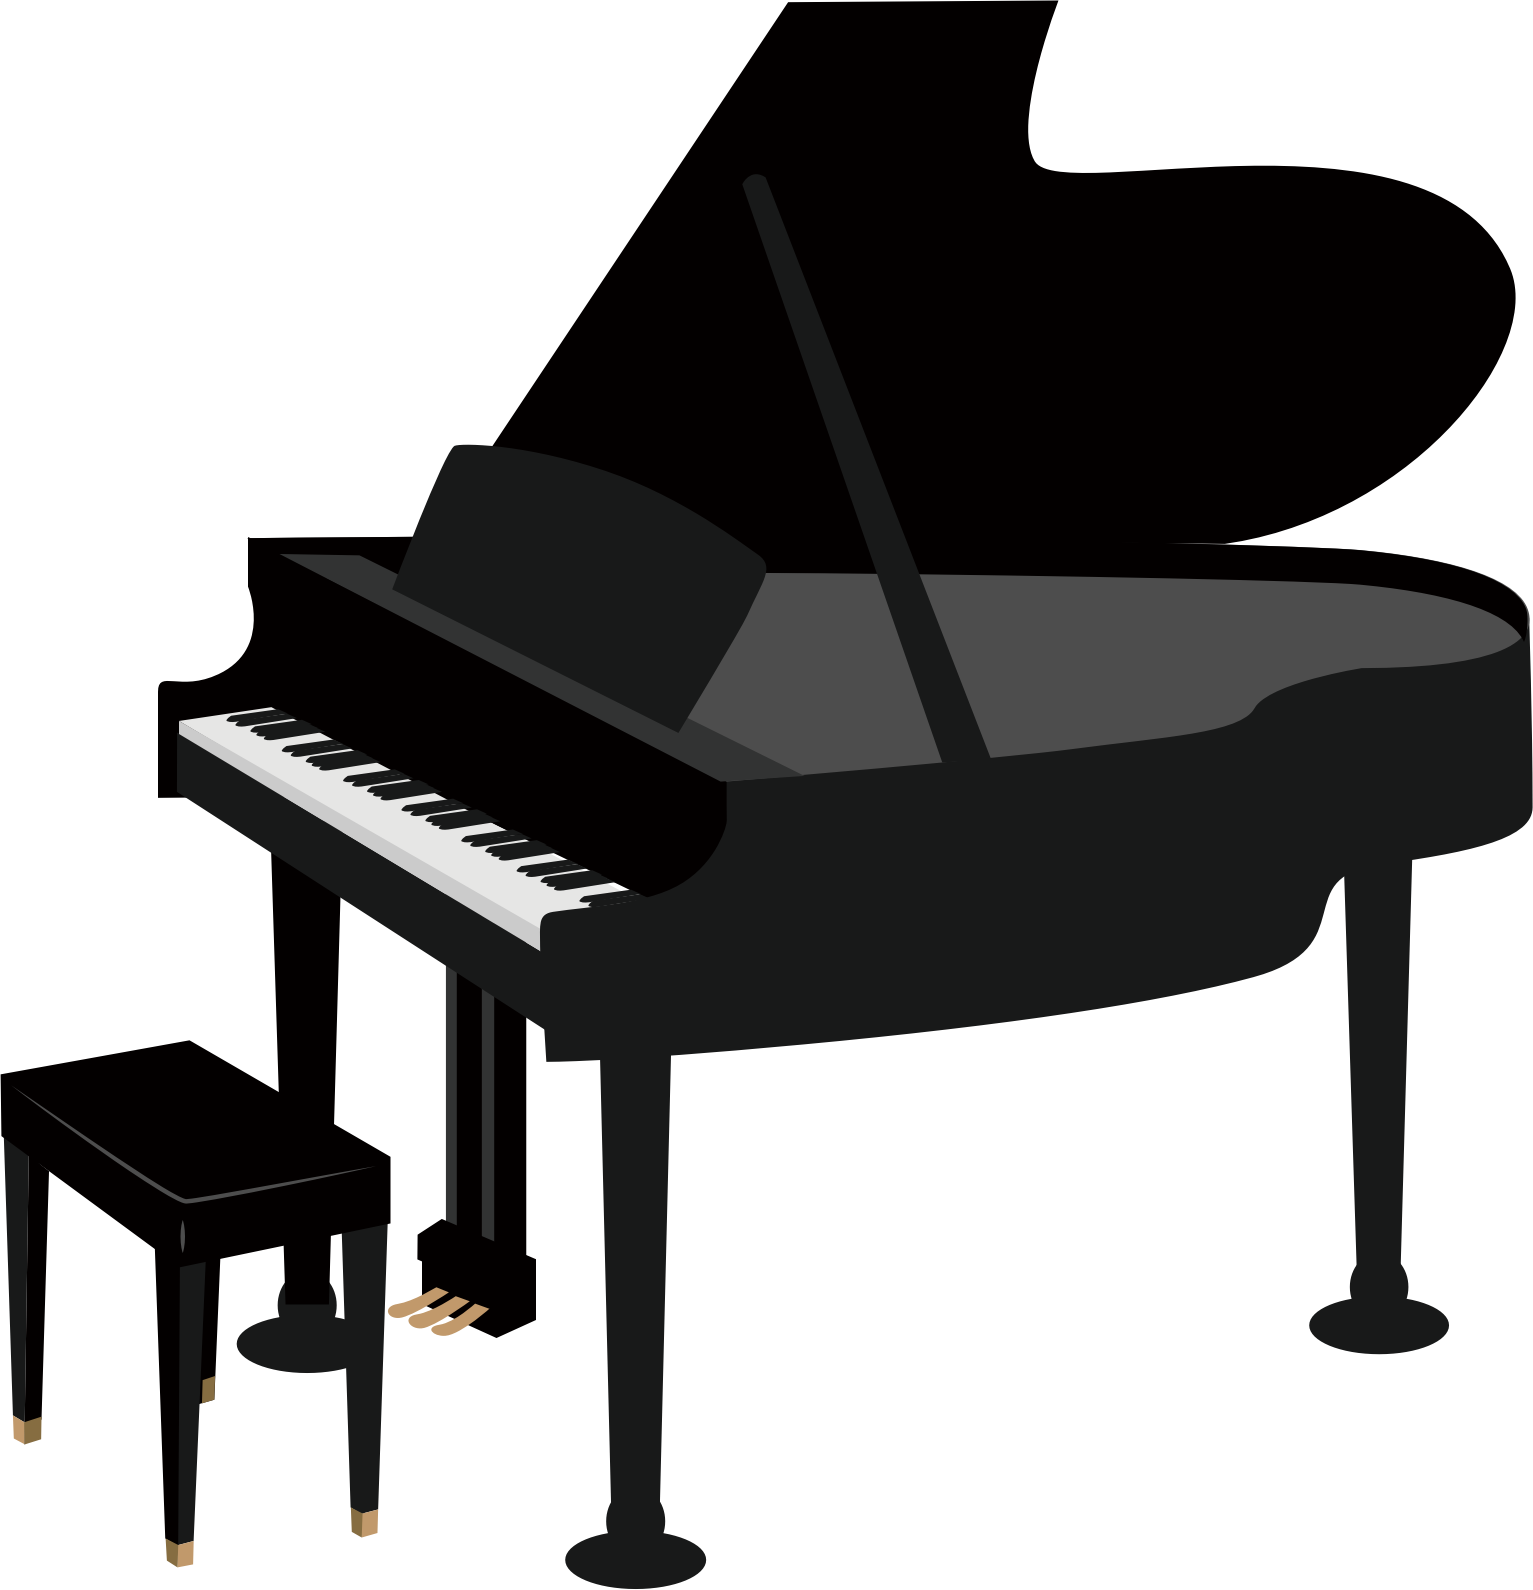 Grand drawing clip art. Piano clipart transparent background